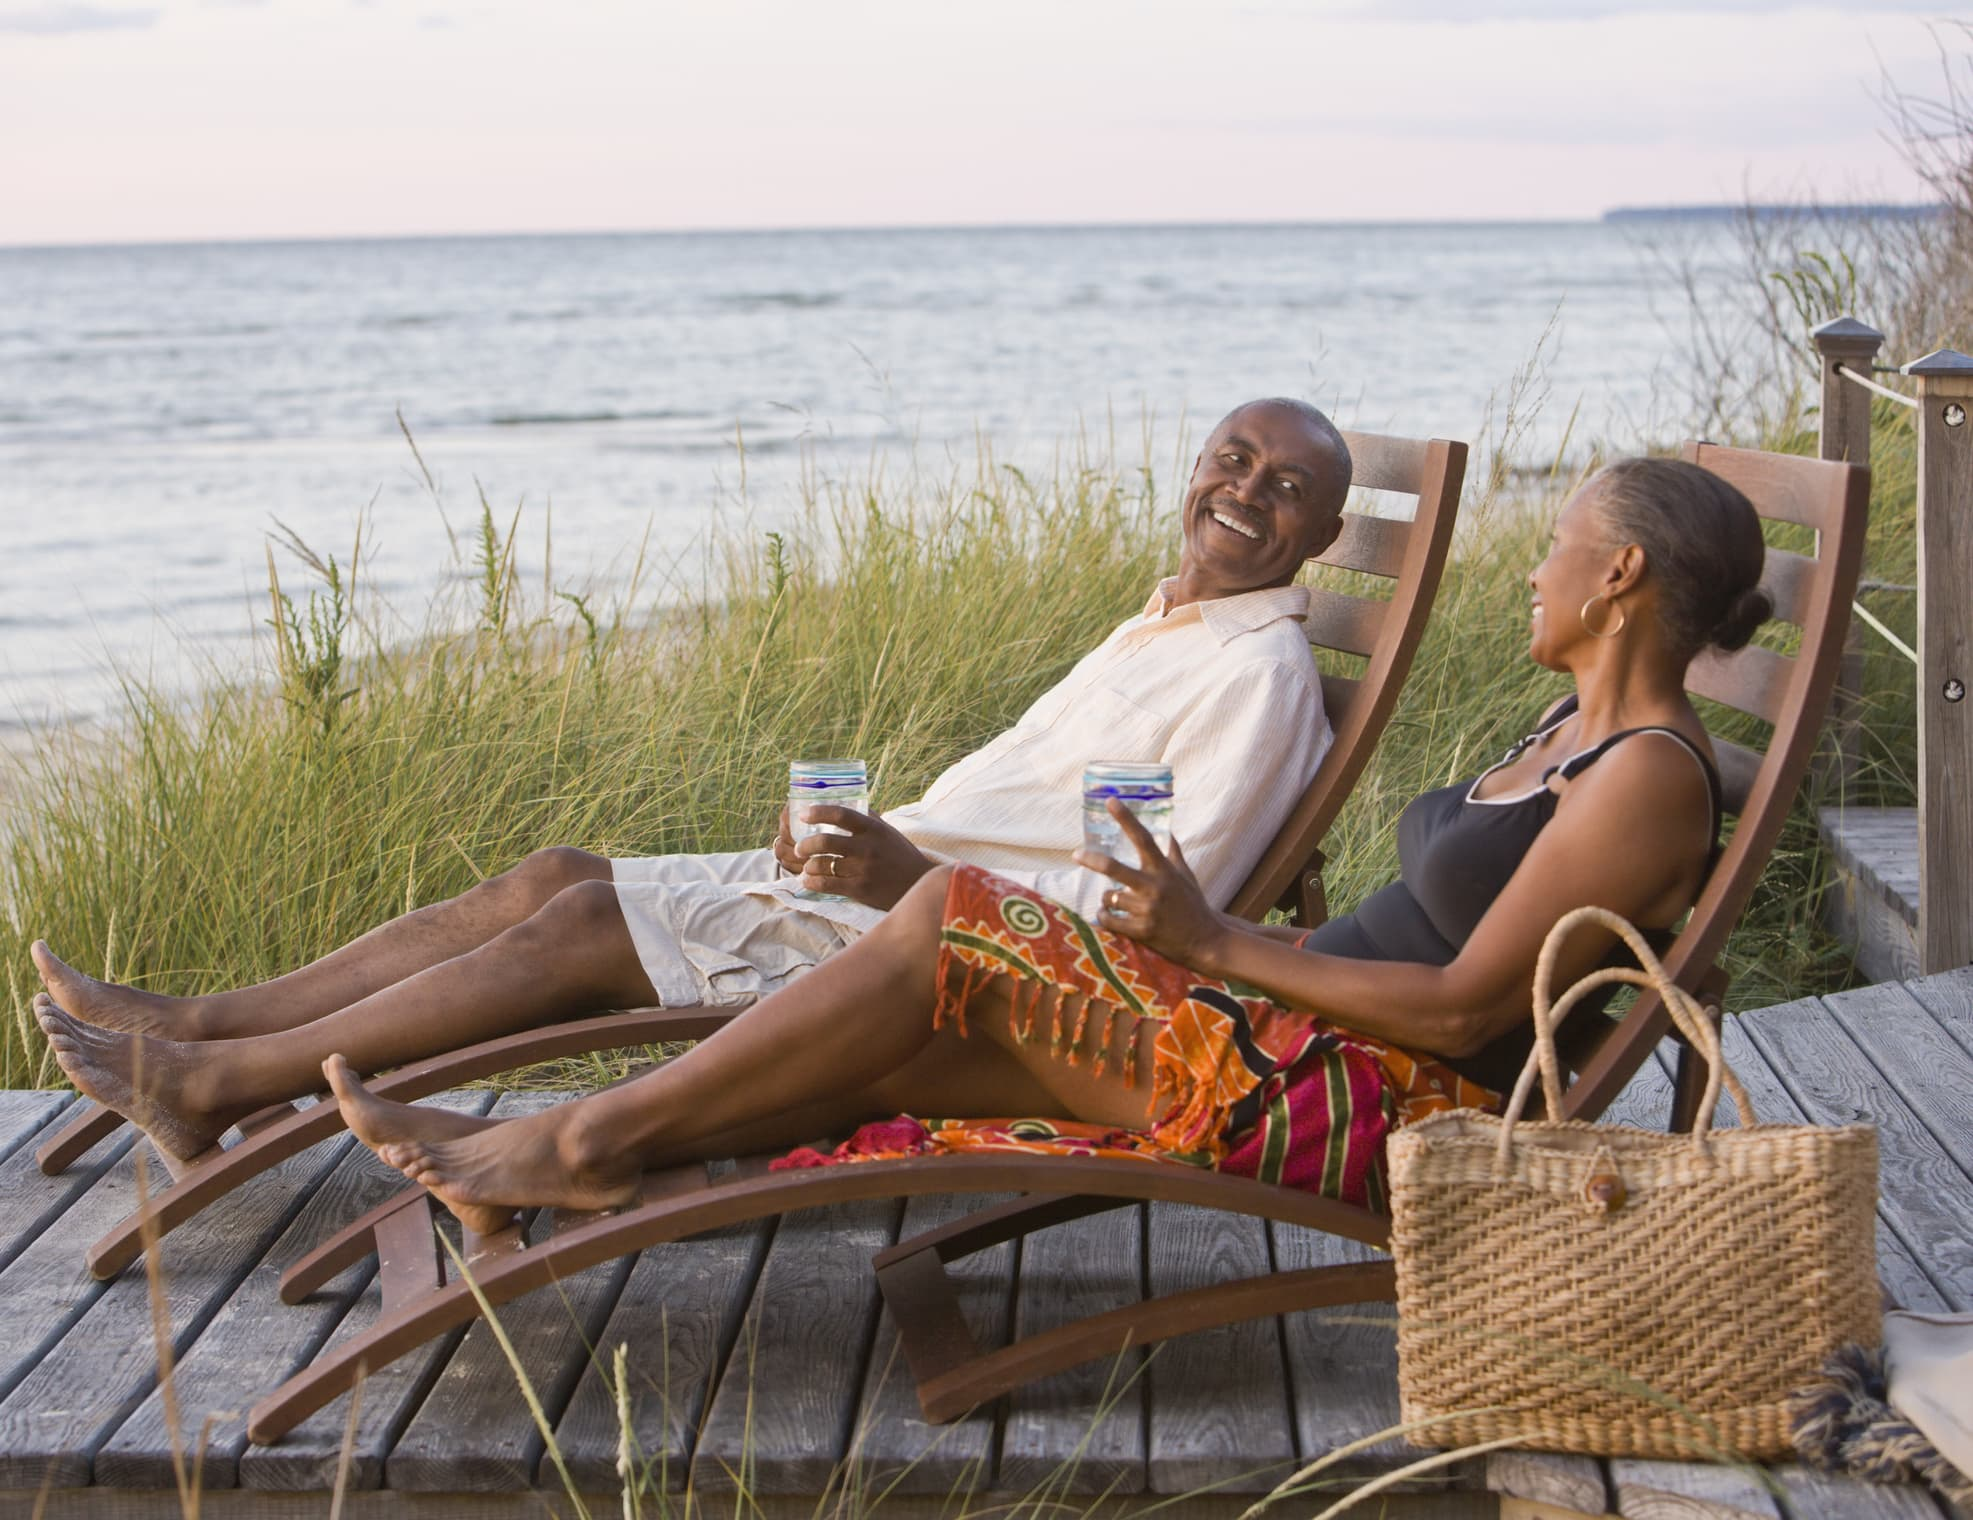 Here are the top 5 U.S. cities for retirement